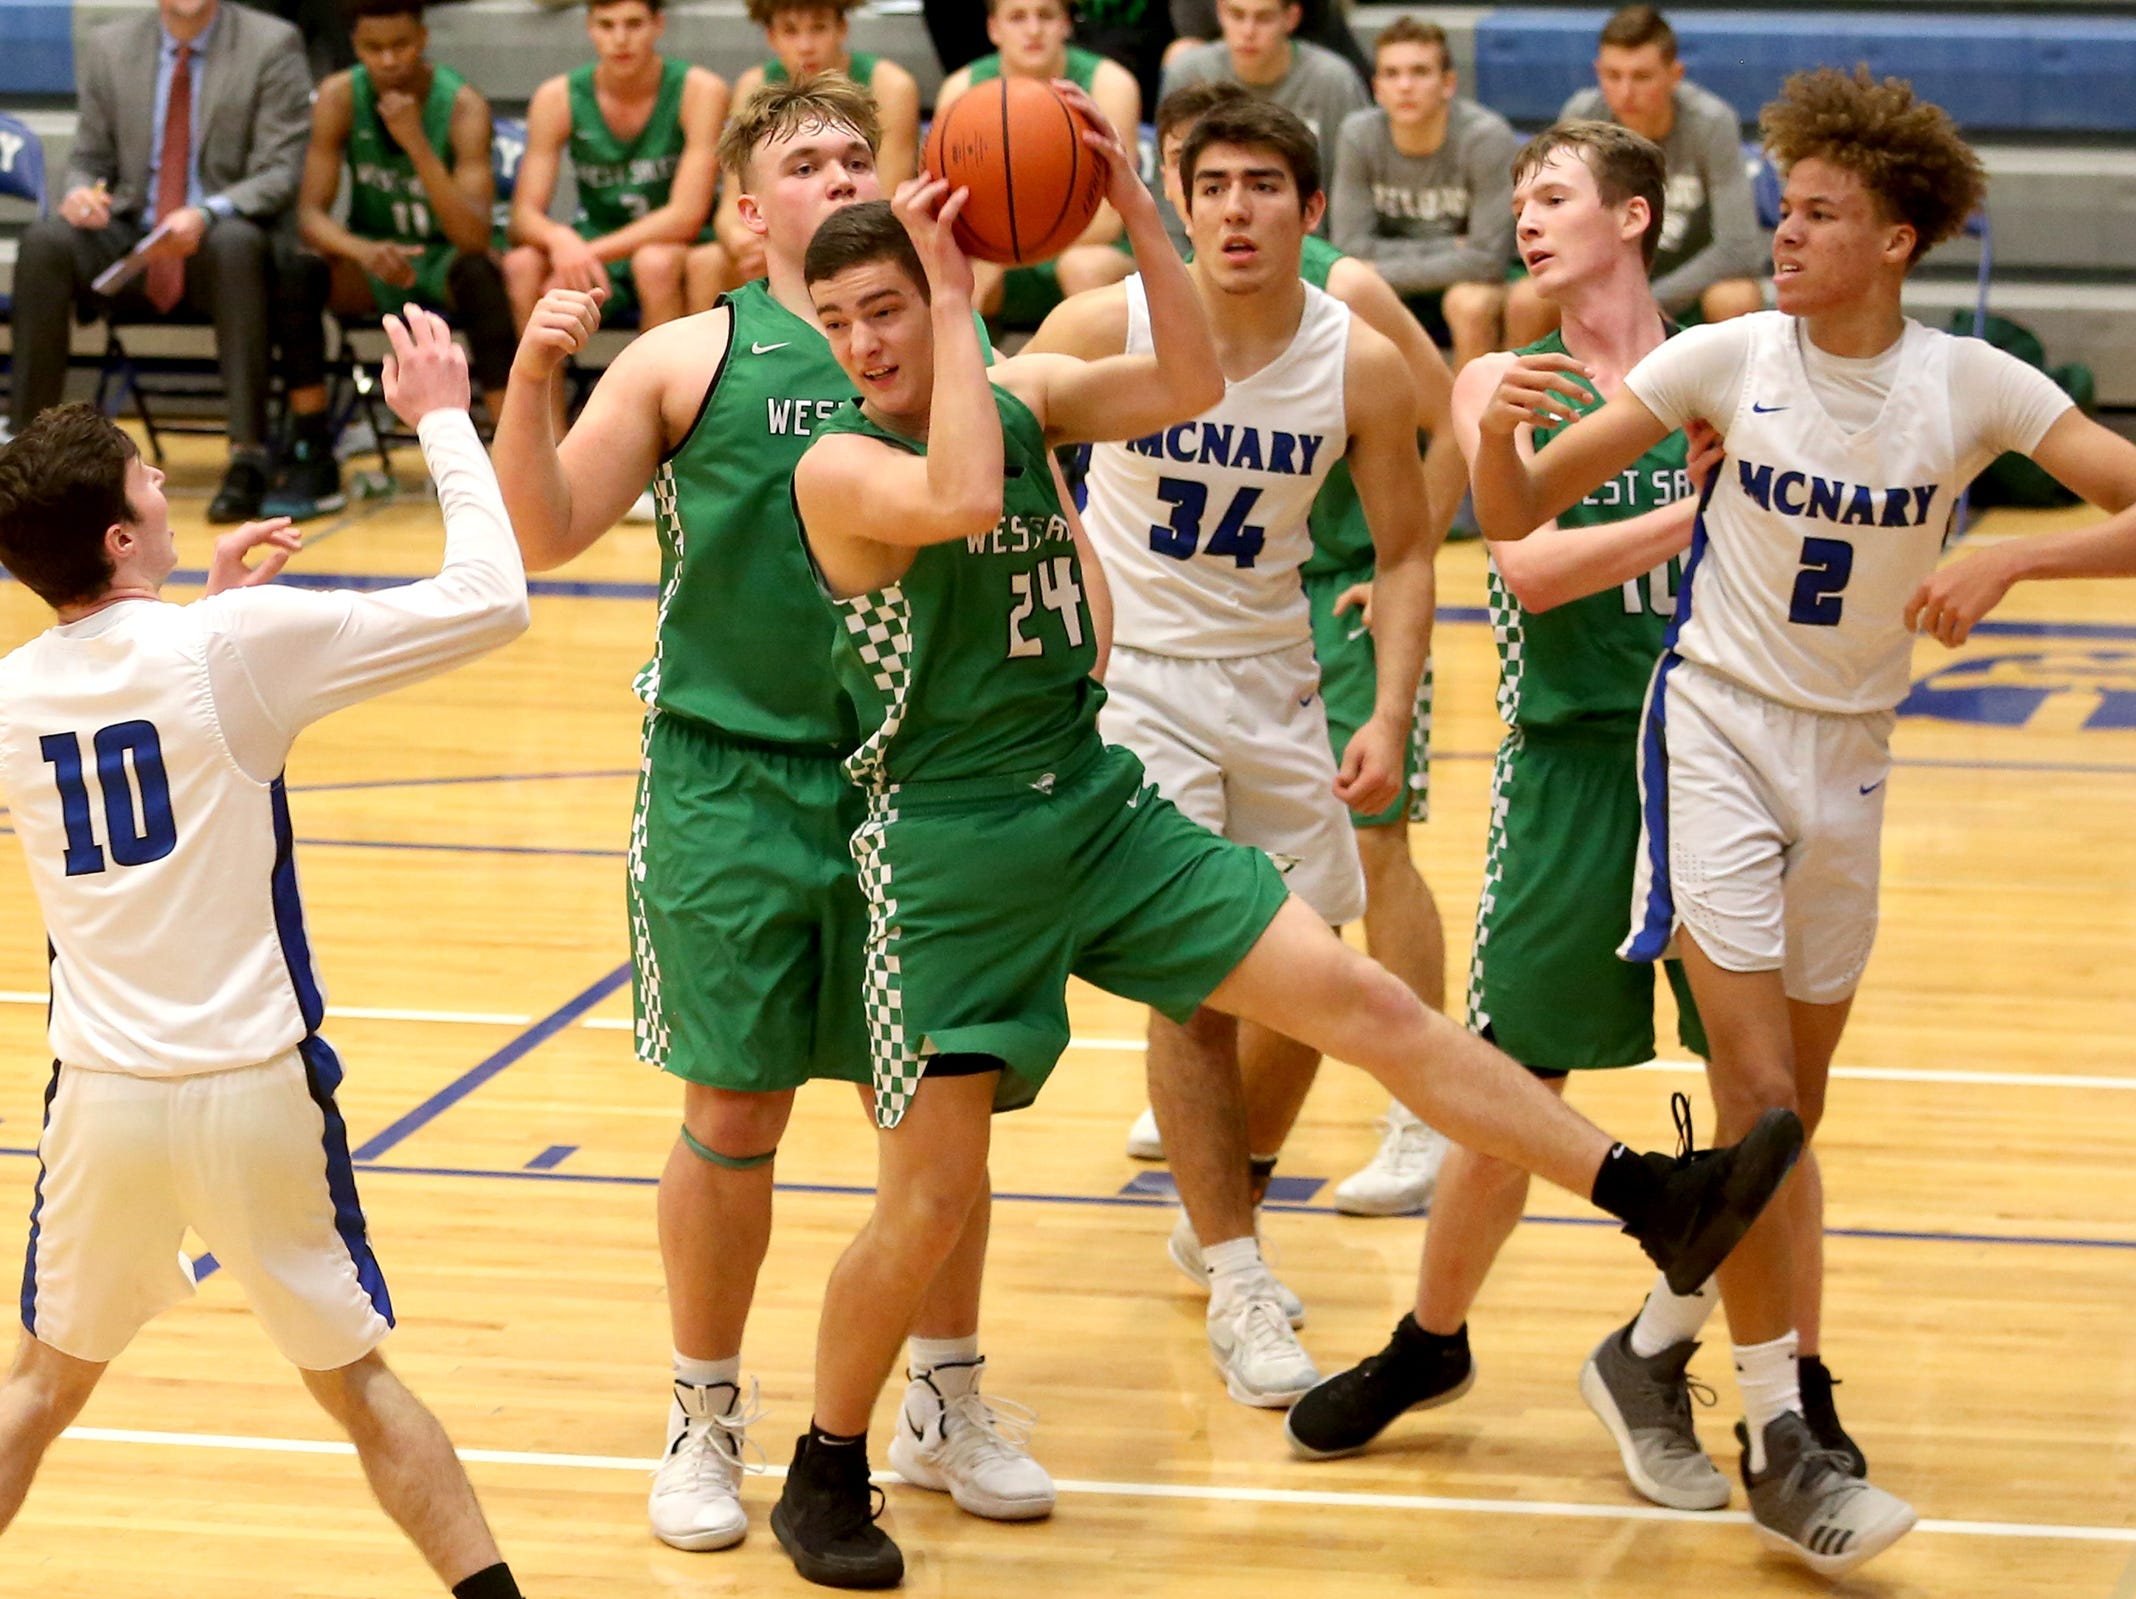 West Salem's Jackson Lowery (24) rebounds the ball during the McNary boys basketball vs. West Salem game at McNary High School in Keizer on Wednesday, Feb. 6, 2019.